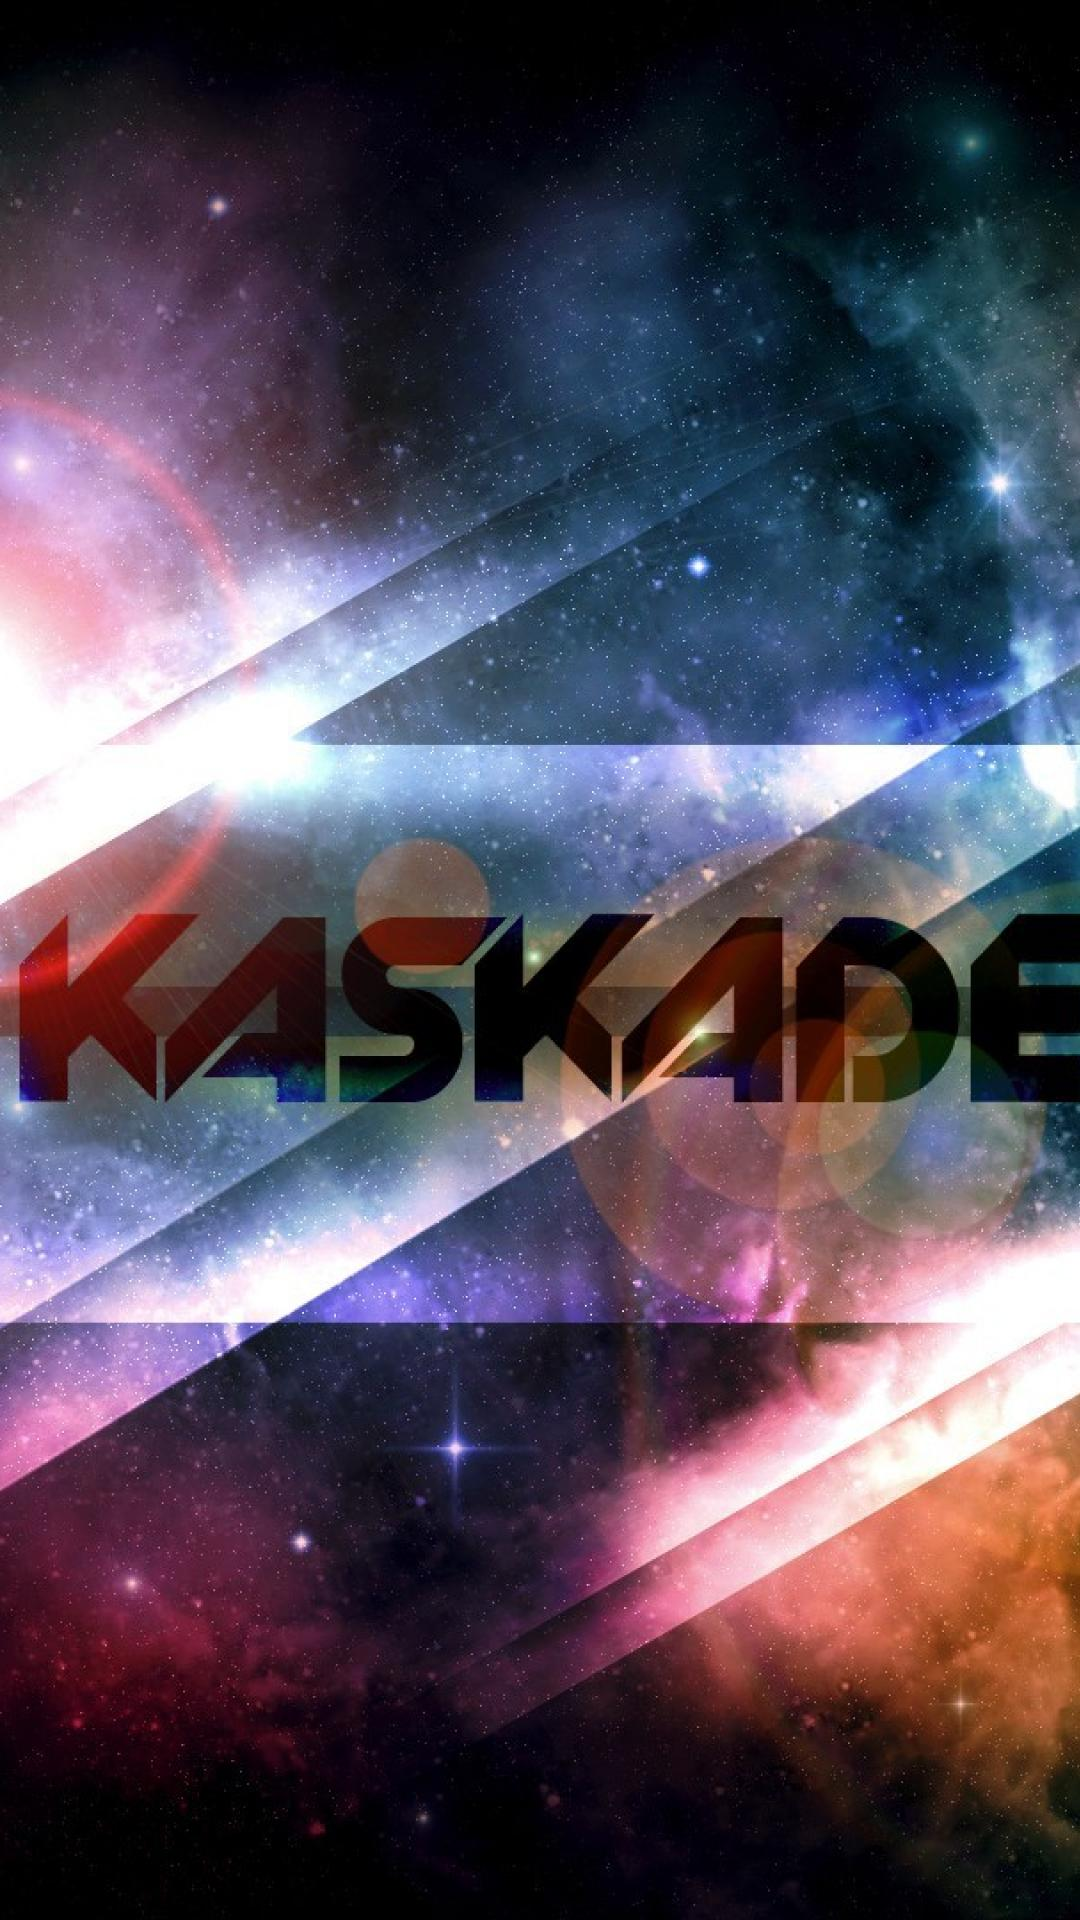 Kaskade Iphone Wallpapers Top Free Kaskade Iphone Backgrounds Wallpaperaccess